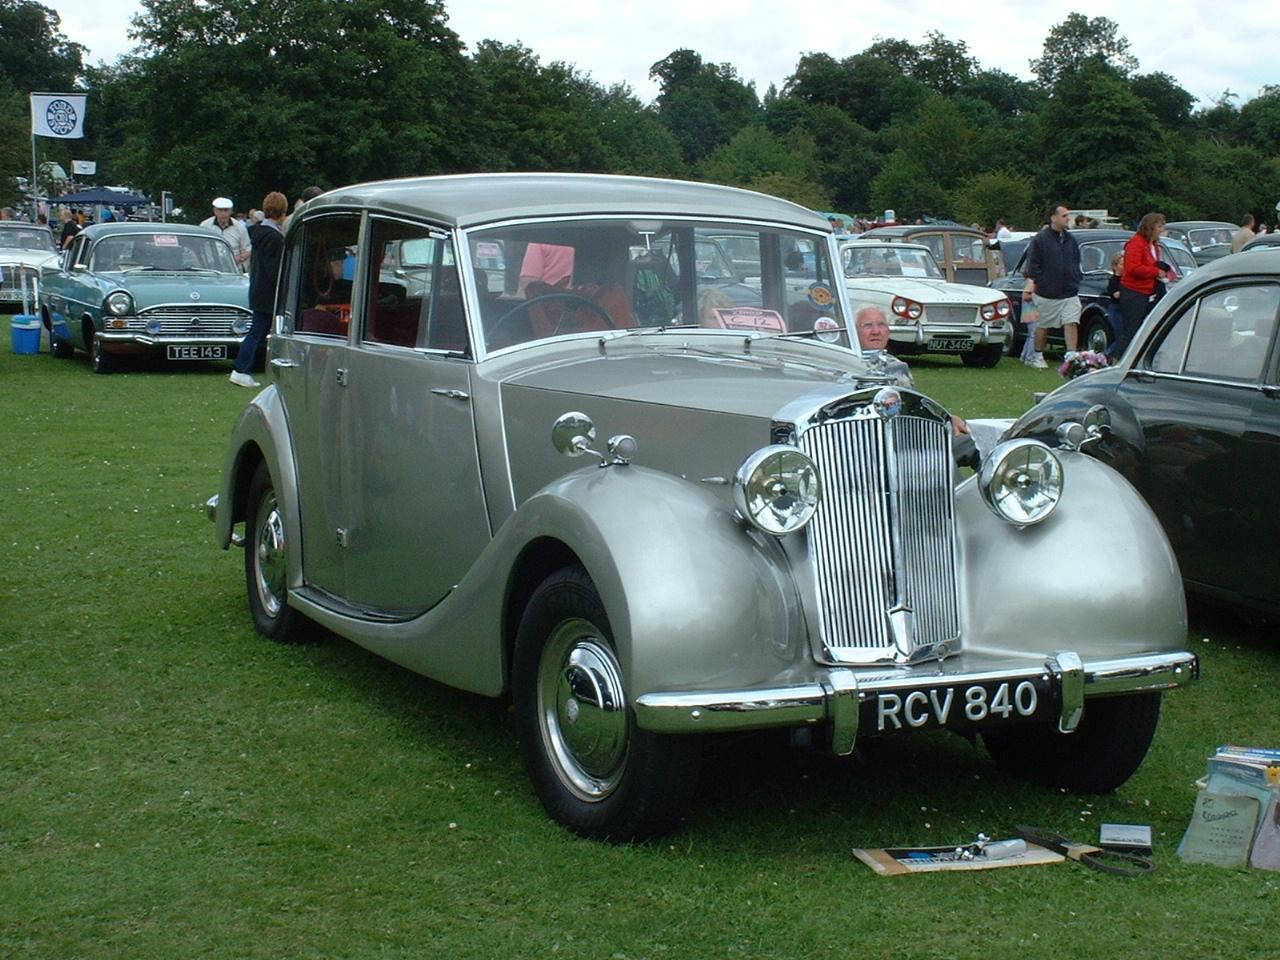 1950 Triumph Mayflower Saloon